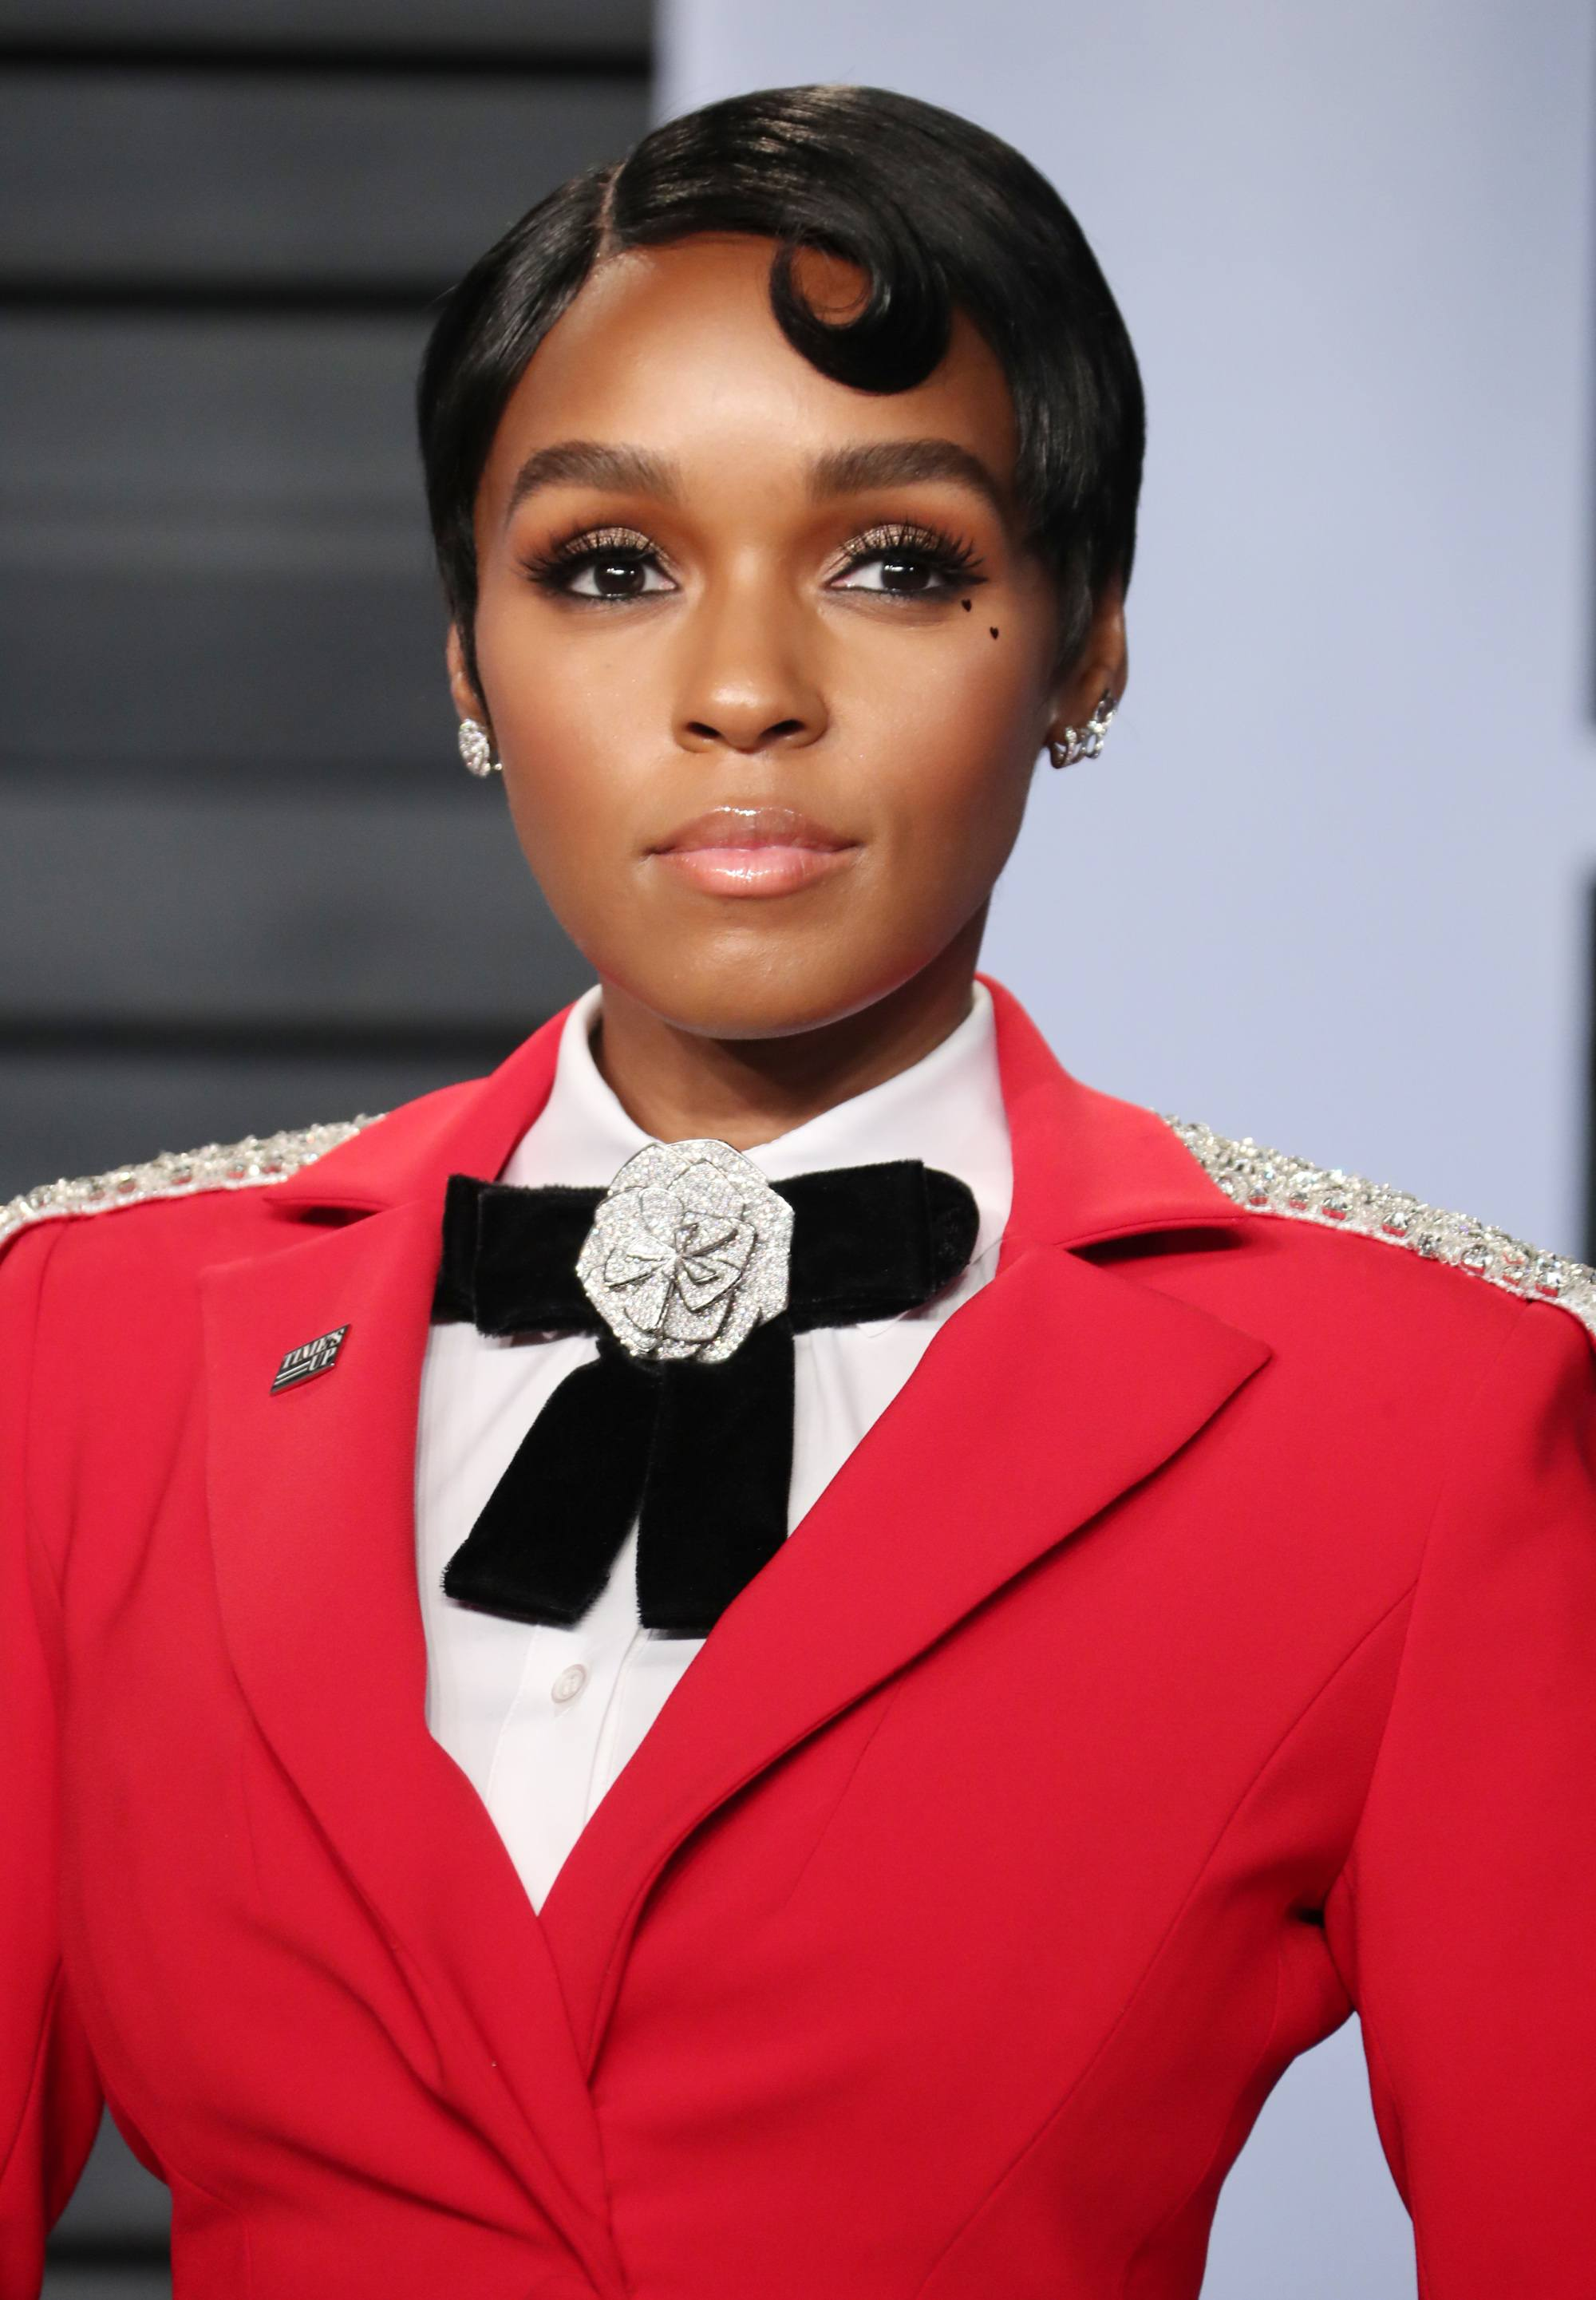 janelle monae with short dark brown pixie hair with retro wave finish wearing red blazer, white shirt and black big bow tie